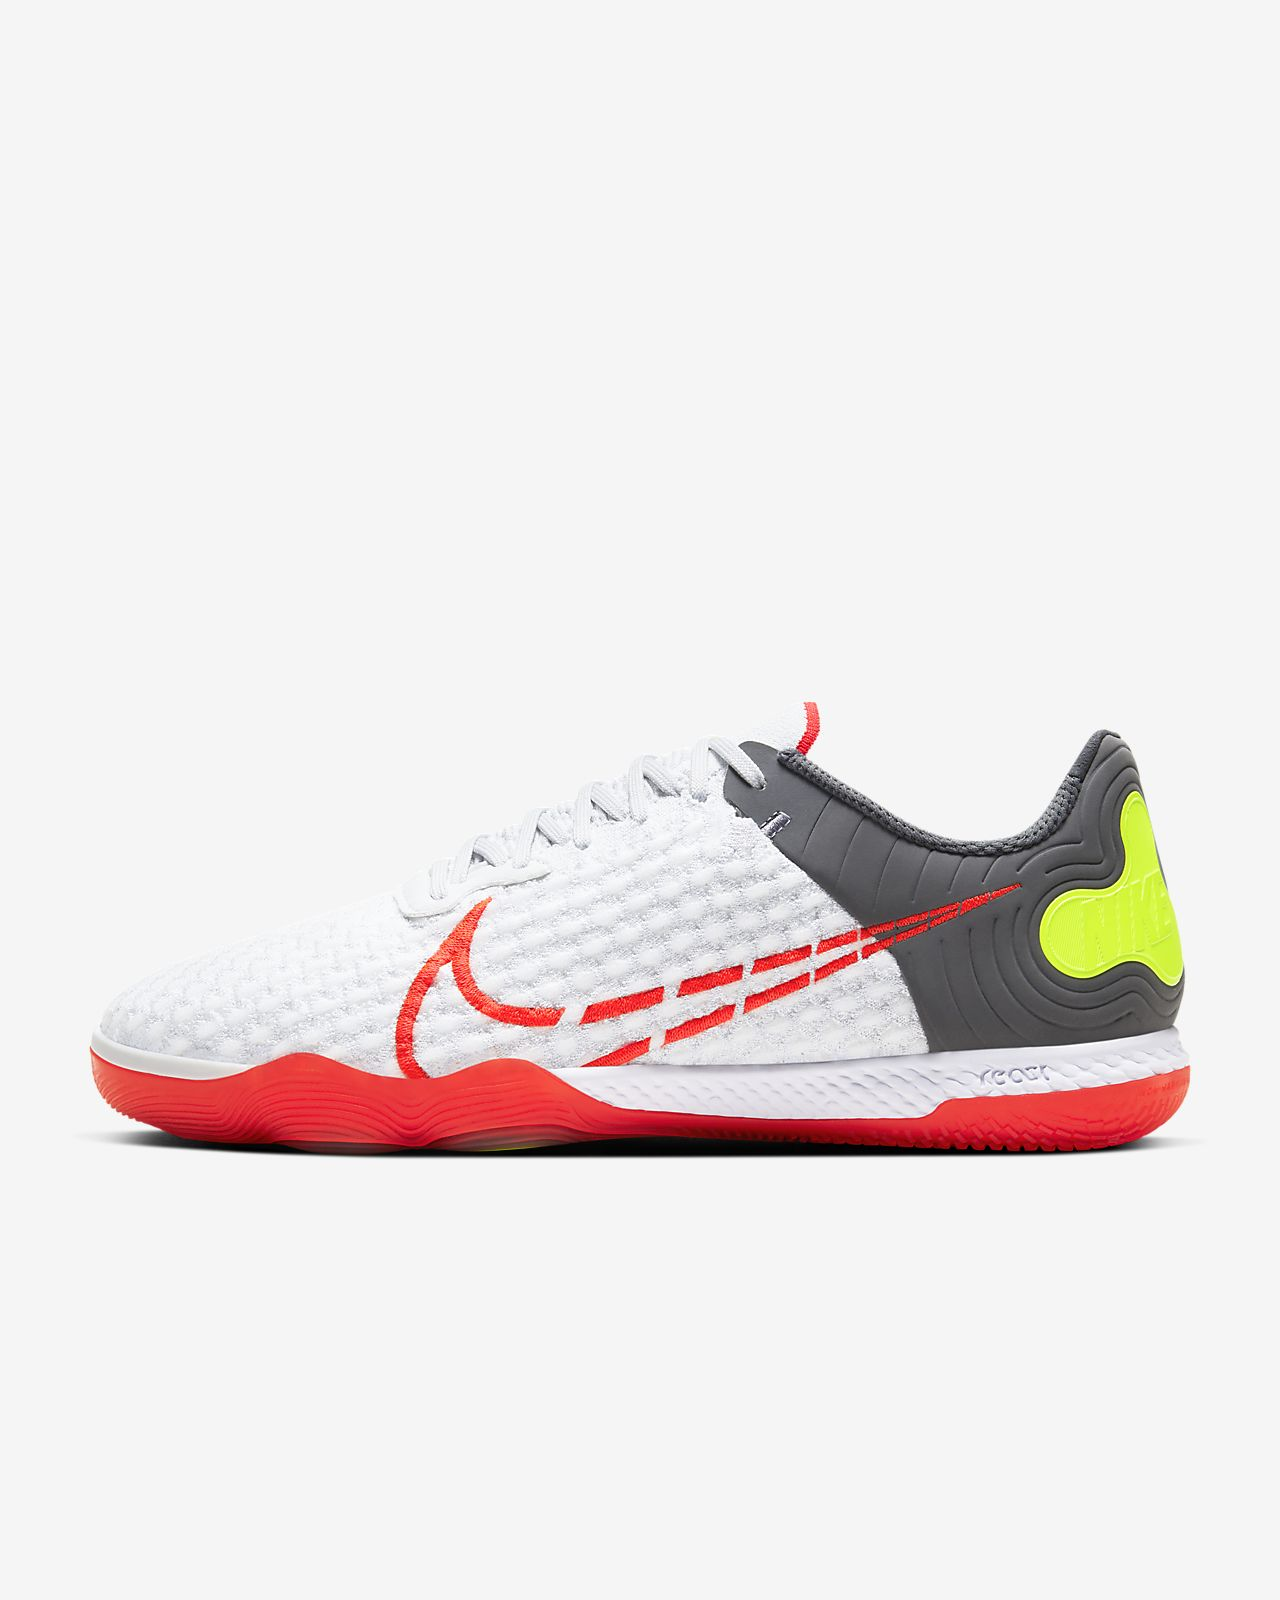 Nike React Gato IndoorCourt Football Shoe